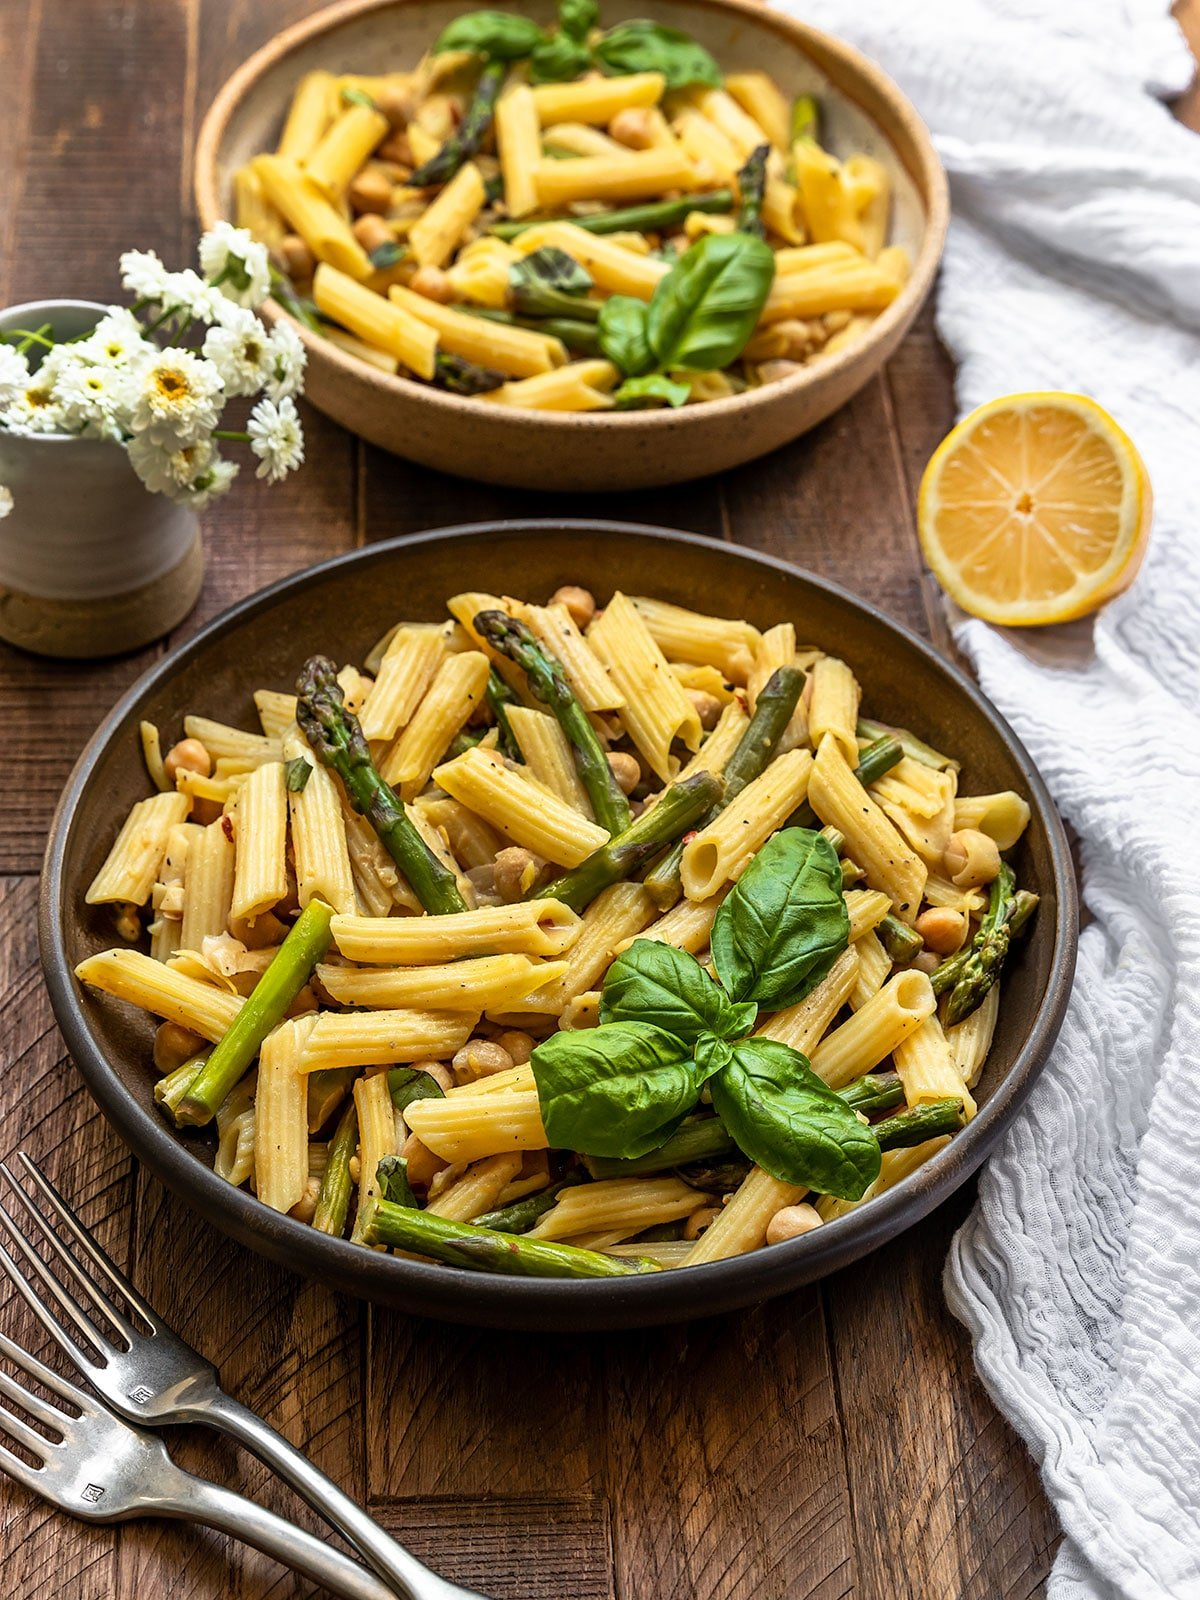 two bowls of penne pasta with asparagus, lemon, and basil